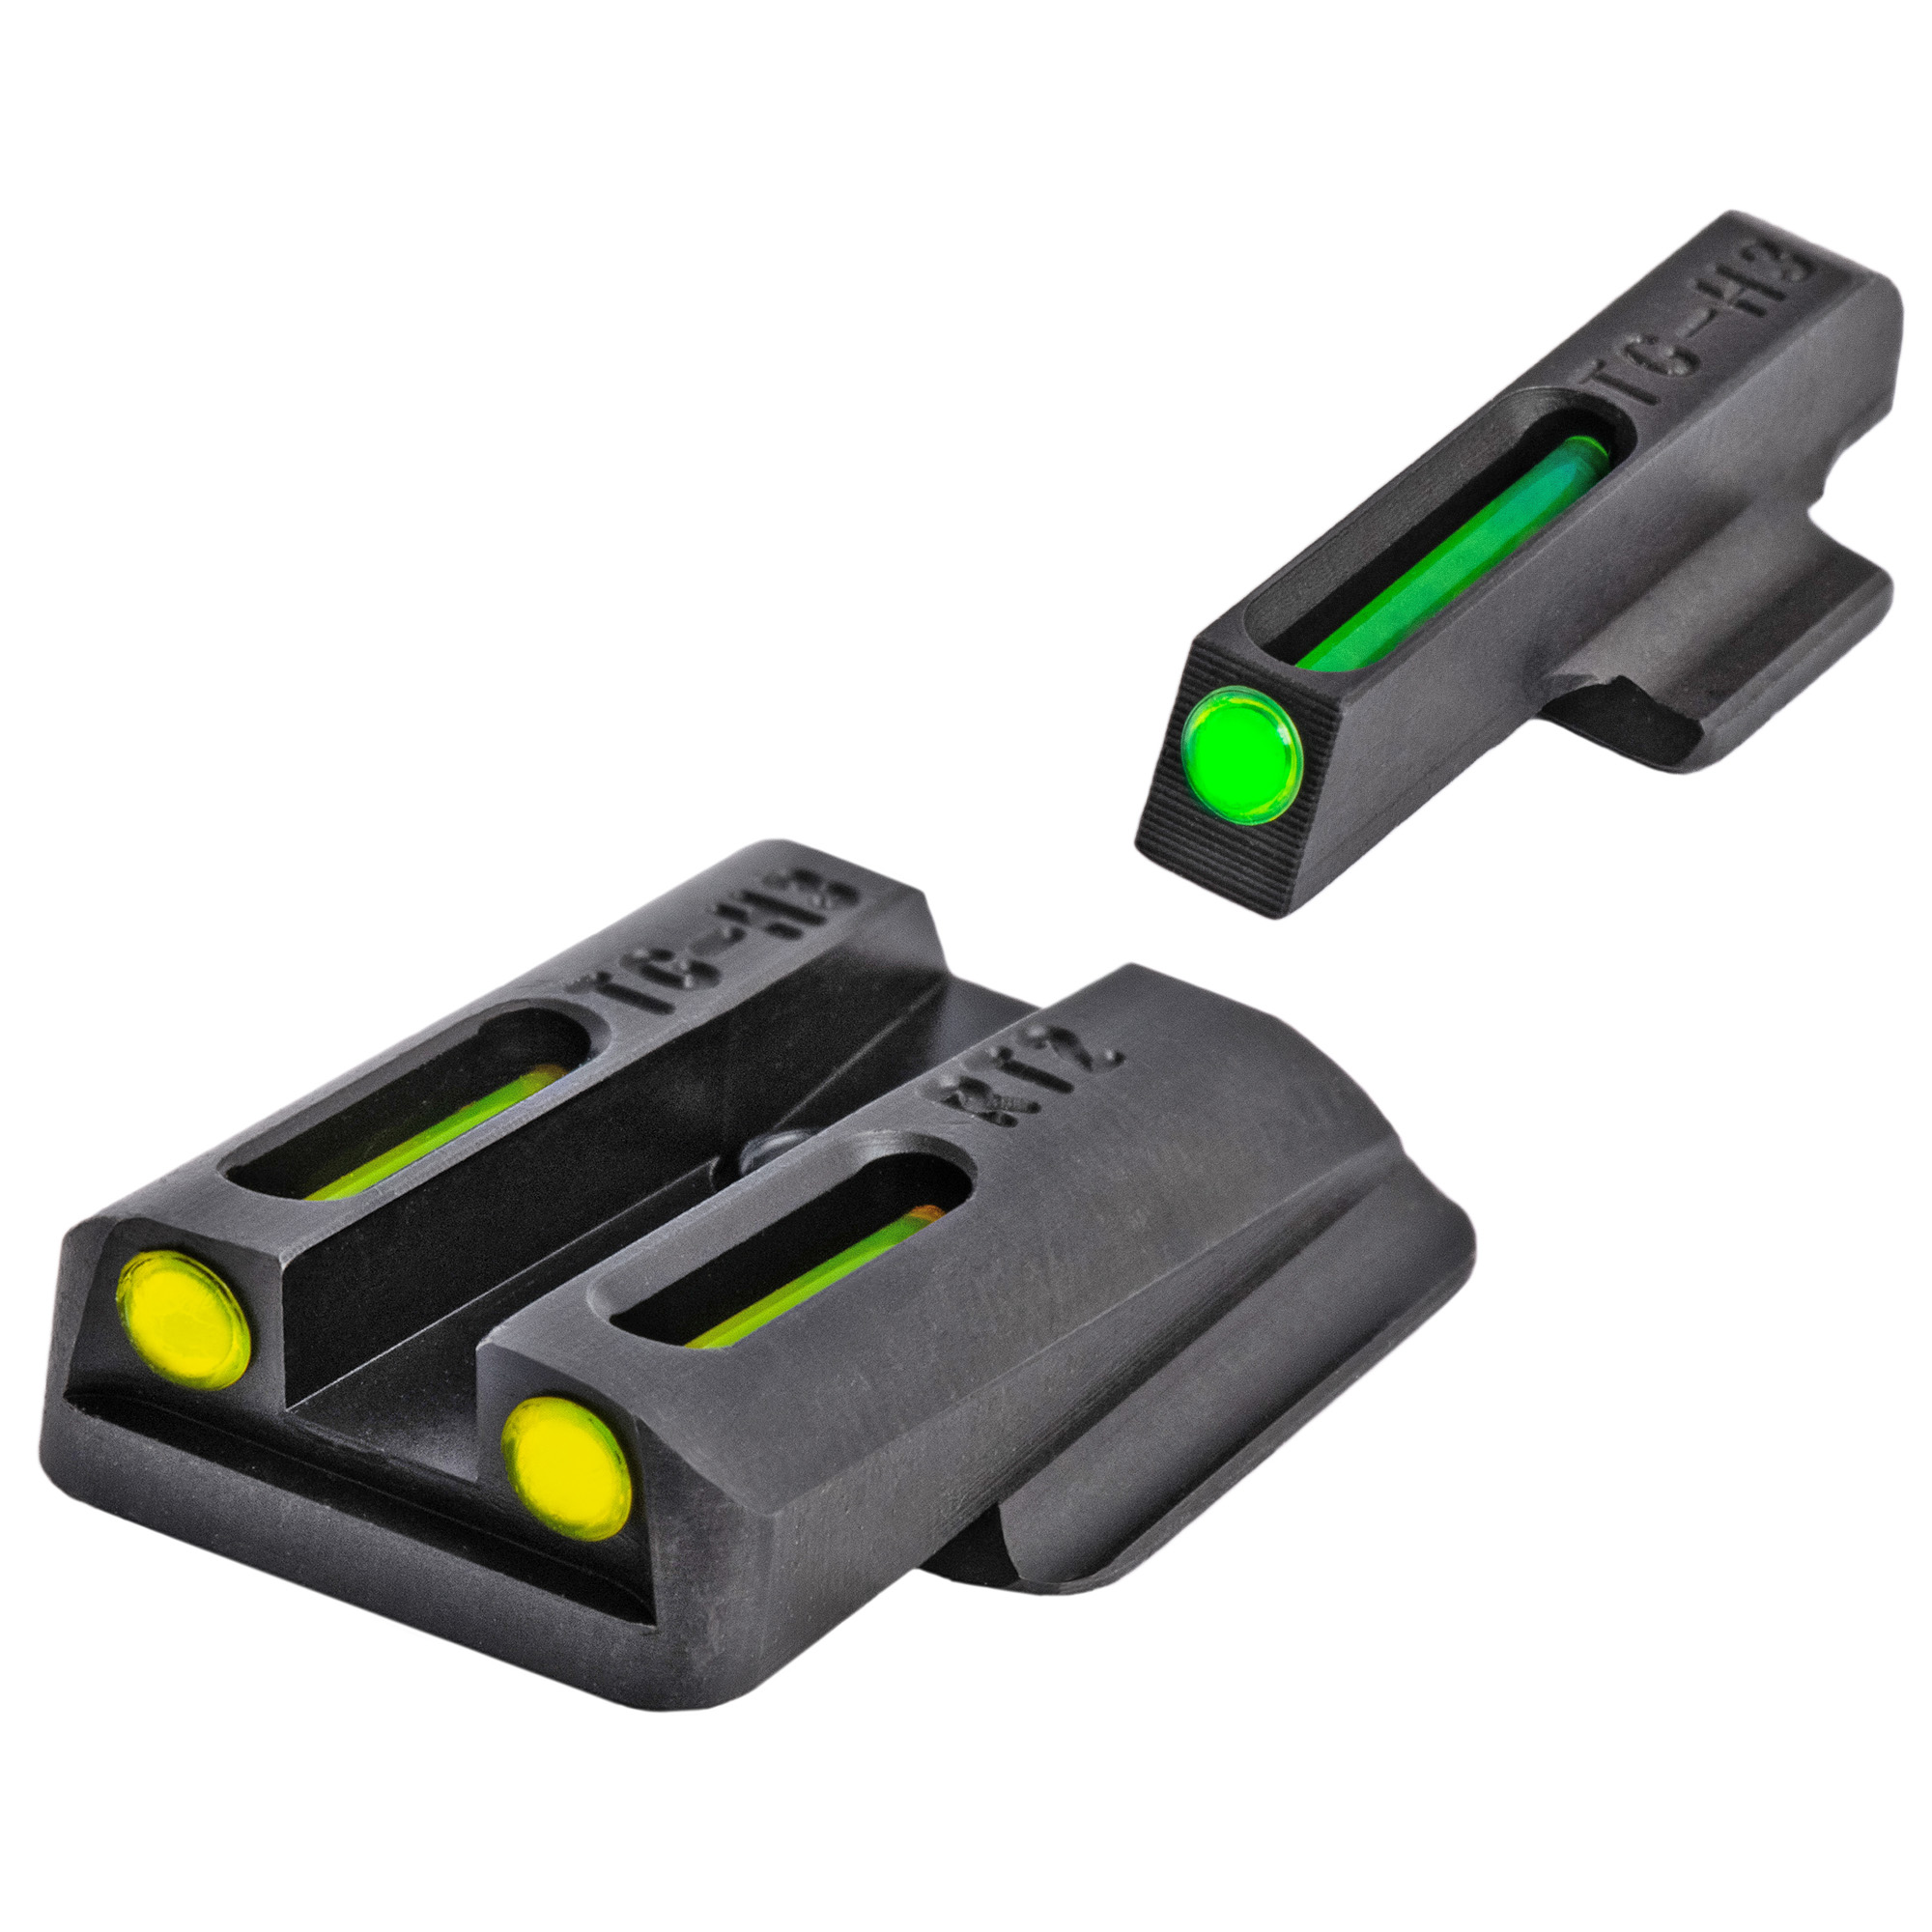 """When you need to make a fast and accurate shot"""" brightness counts. We brought fiber-optics to the shooting sports industry years ago for this very reason. We have now paired them with our tritium night sights to create a consistently bright sight picture-day or night! Our patented combination of Tritium and Fiber-optic technologies unites the best of both worlds. Whether you are in glaring daylight or complete darkness"""" you can count on TFO(R) to provide a bright and reliable sight picture."""